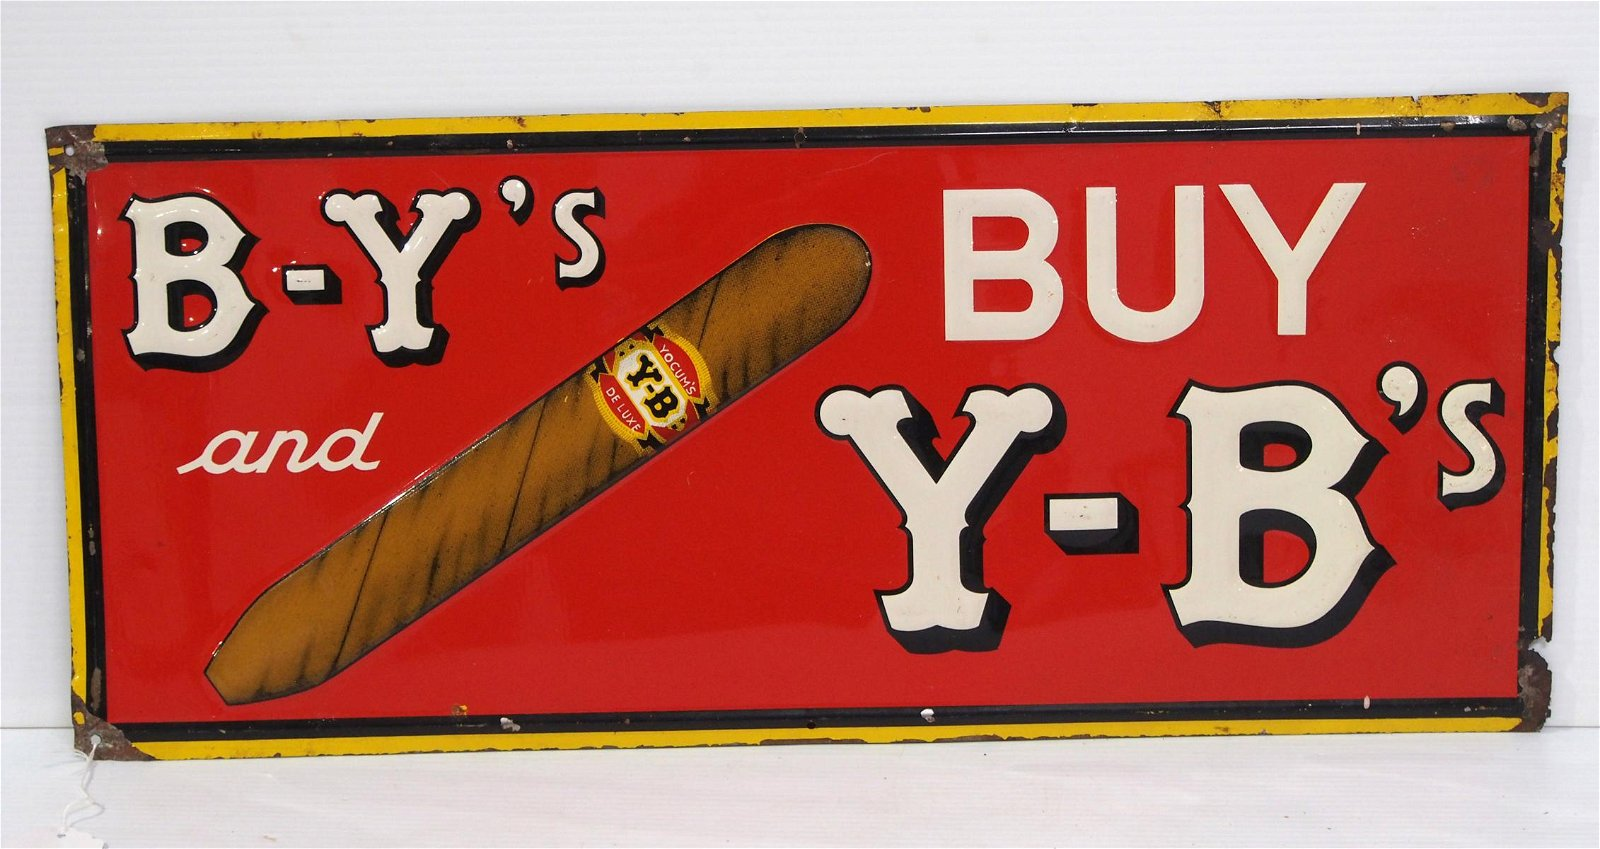 B-Y's and Y-B's Cigar sign